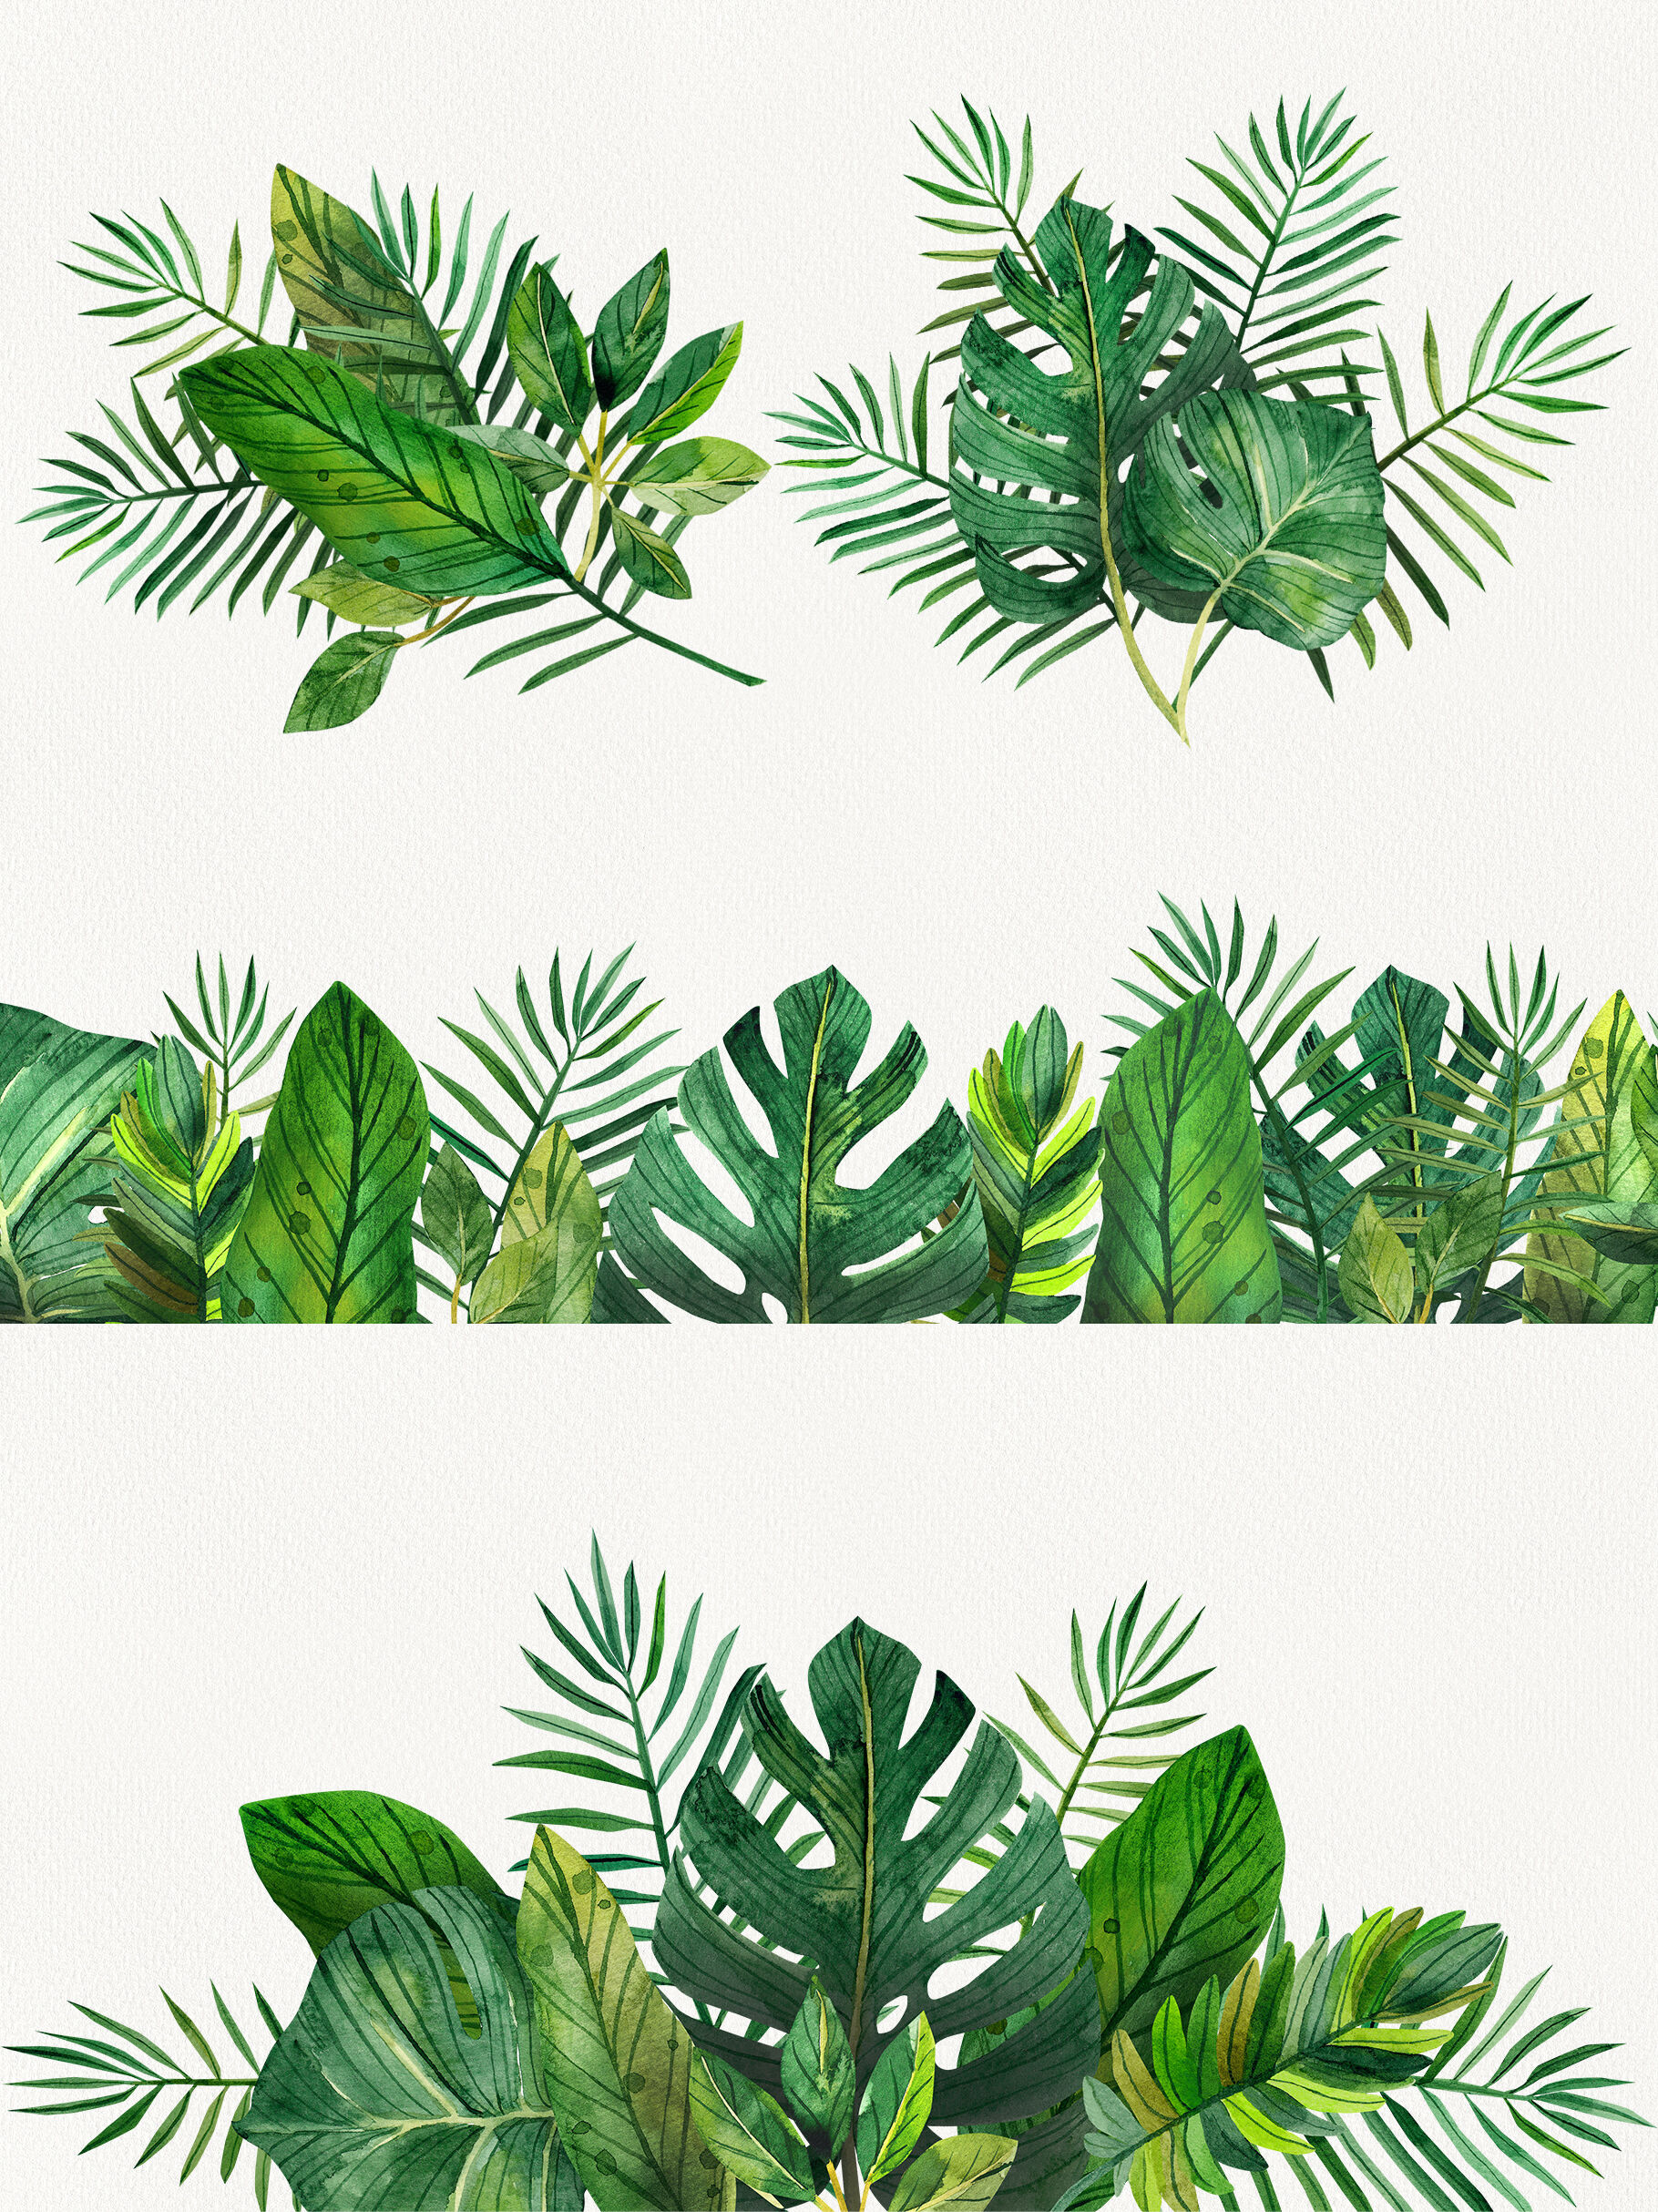 Watercolor Tropical Leaves Clip Art Digital Drawing Tropical Leaves By Xandpic Art Thehungryjpeg Com You can find more tropical leaves drawing in our search box. watercolor tropical leaves clip art